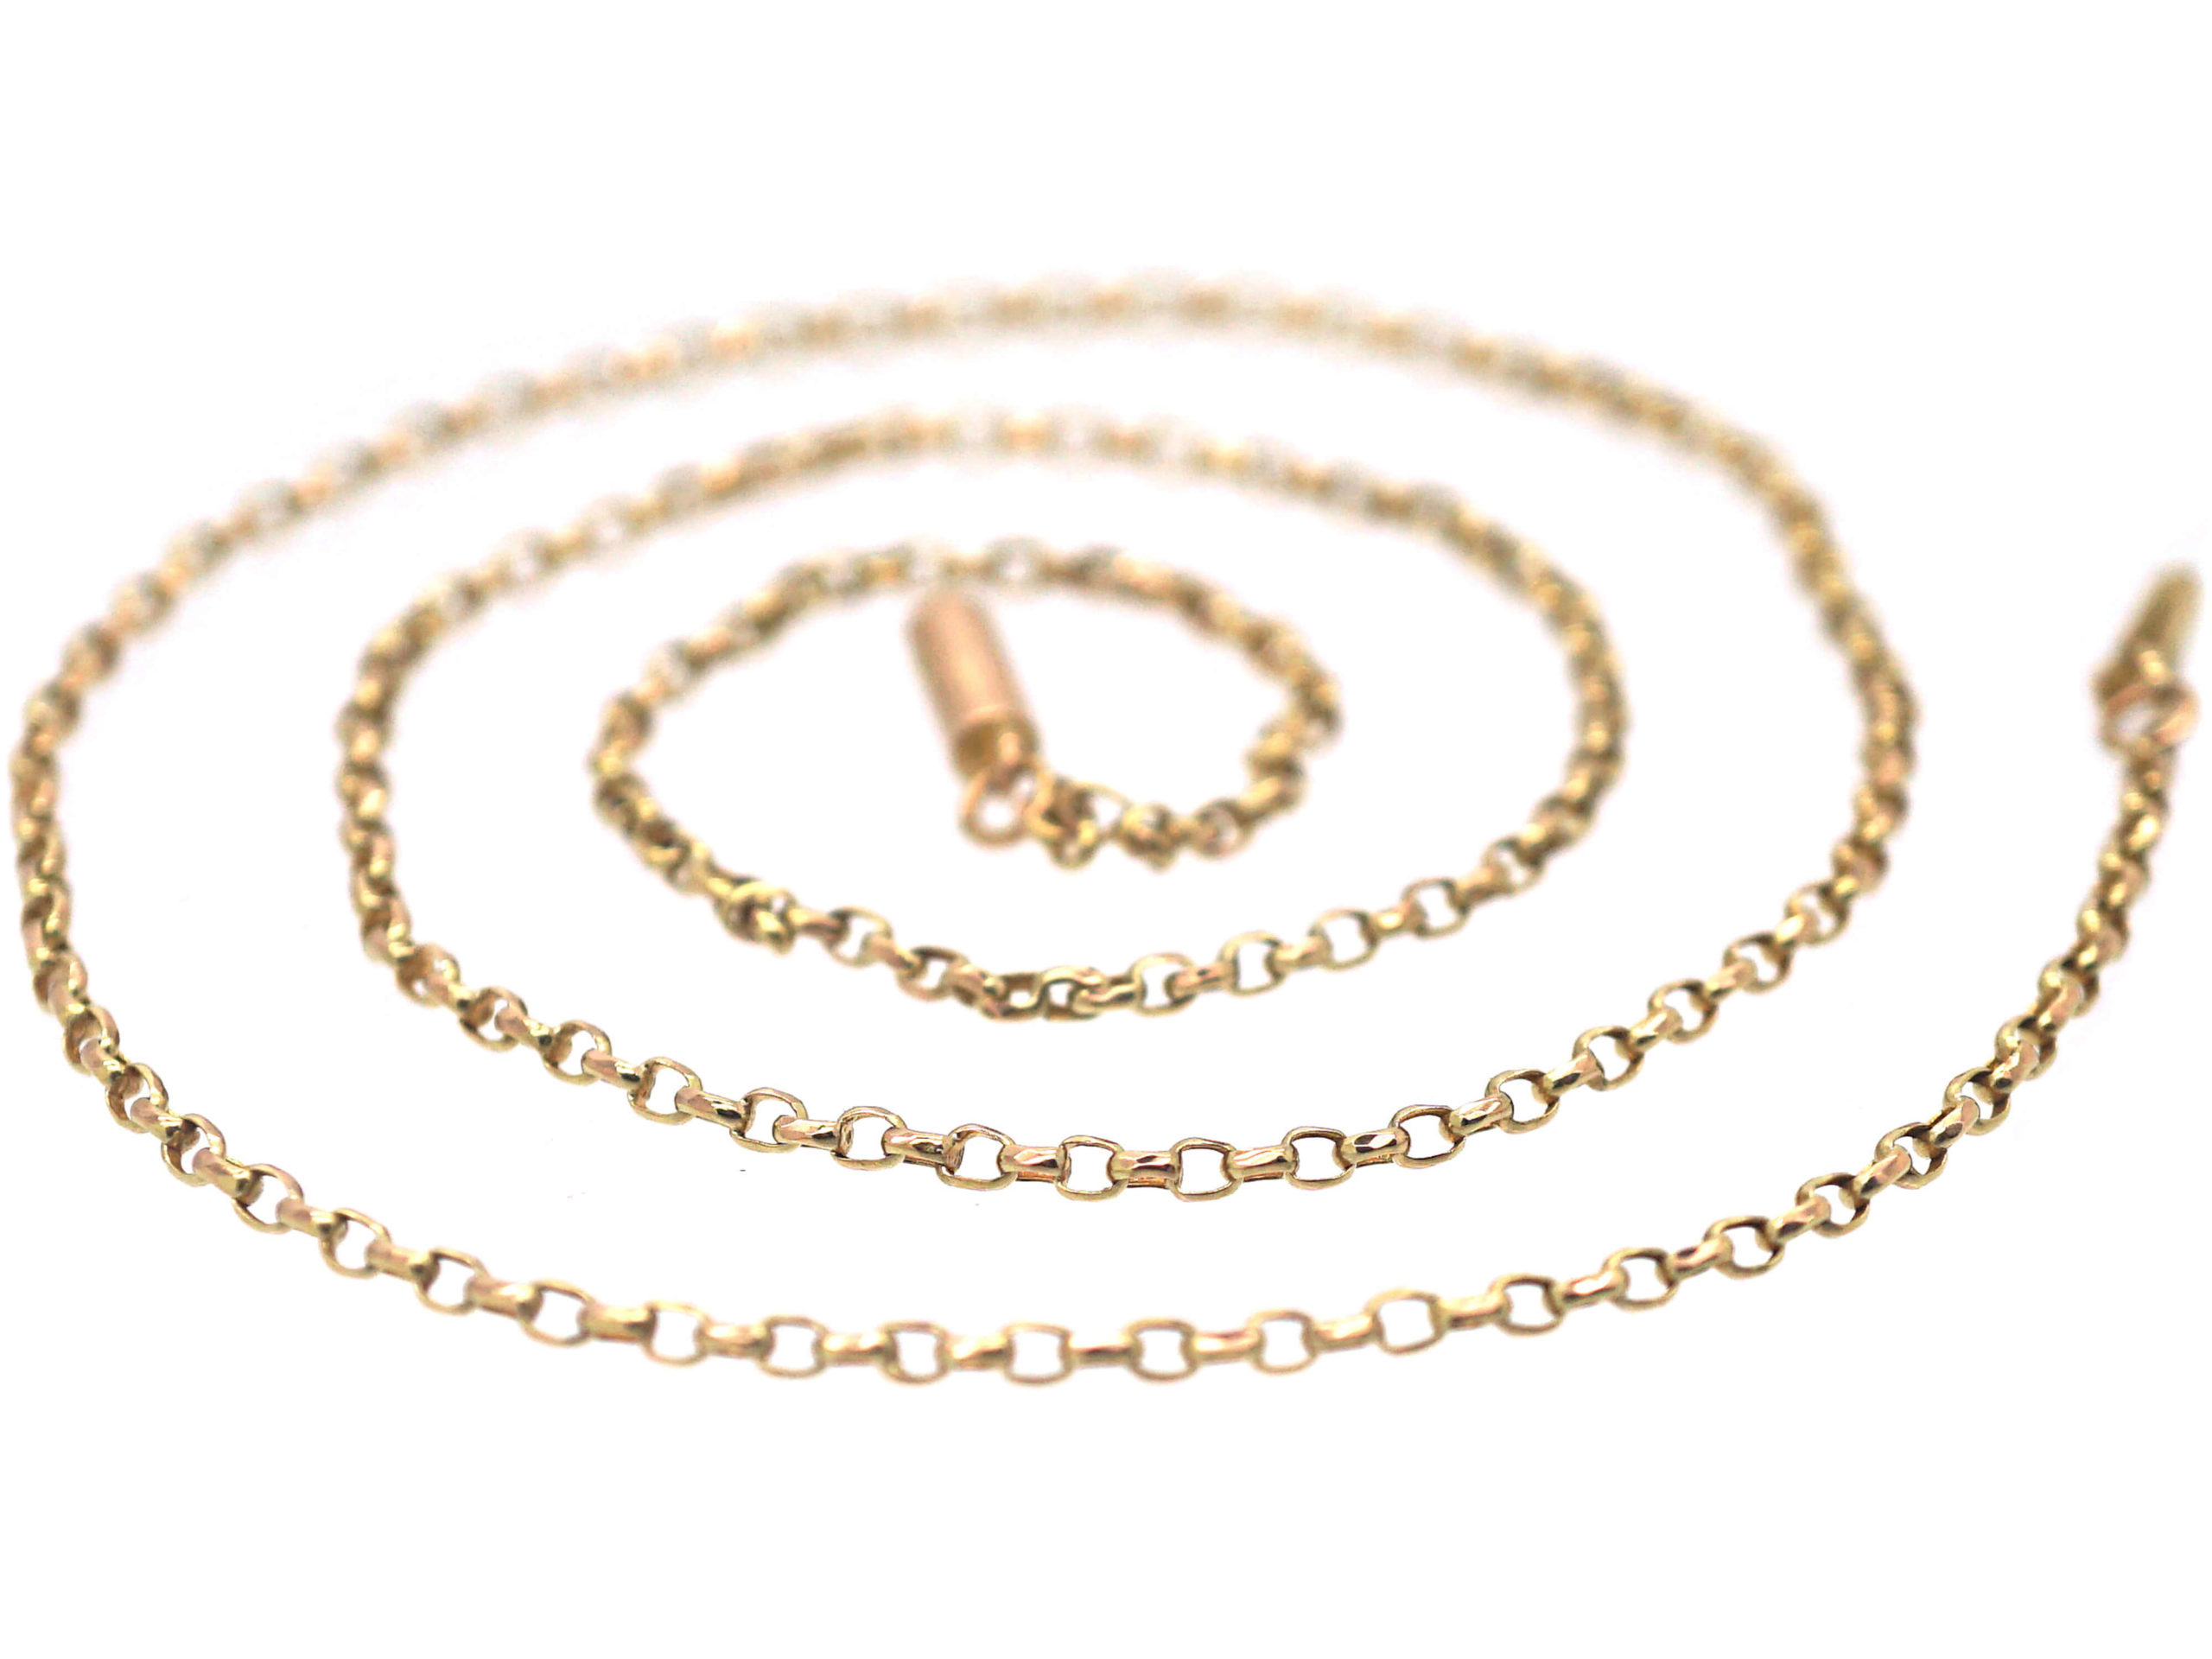 Victorian 9ct Gold Faceted Links Chain